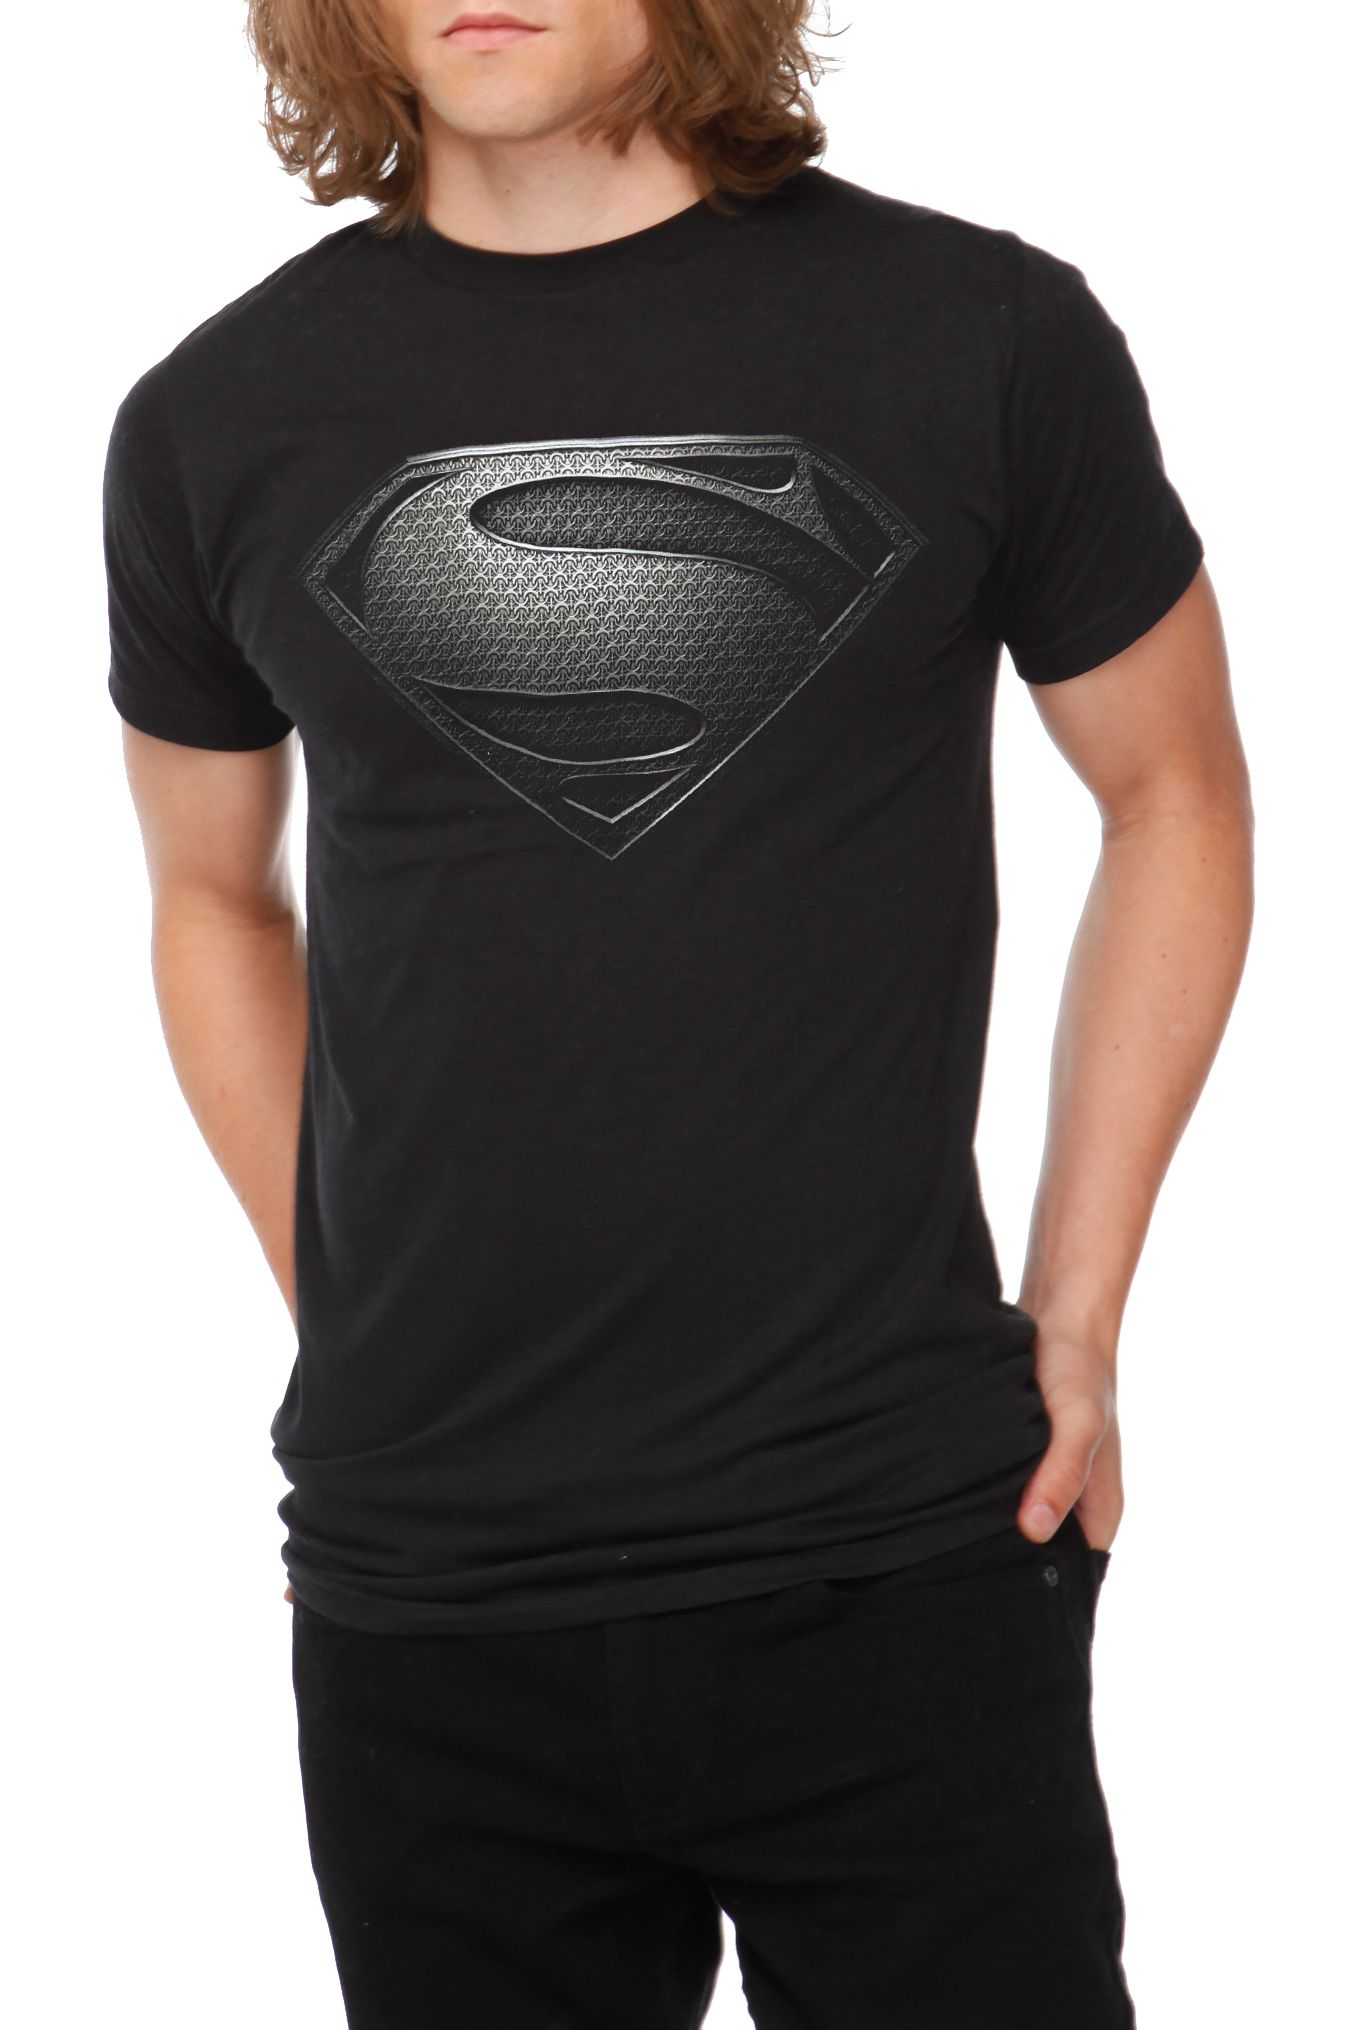 d26af863303 DC Comics Superman Man Of Steel Silver Logo T-Shirt  20.50